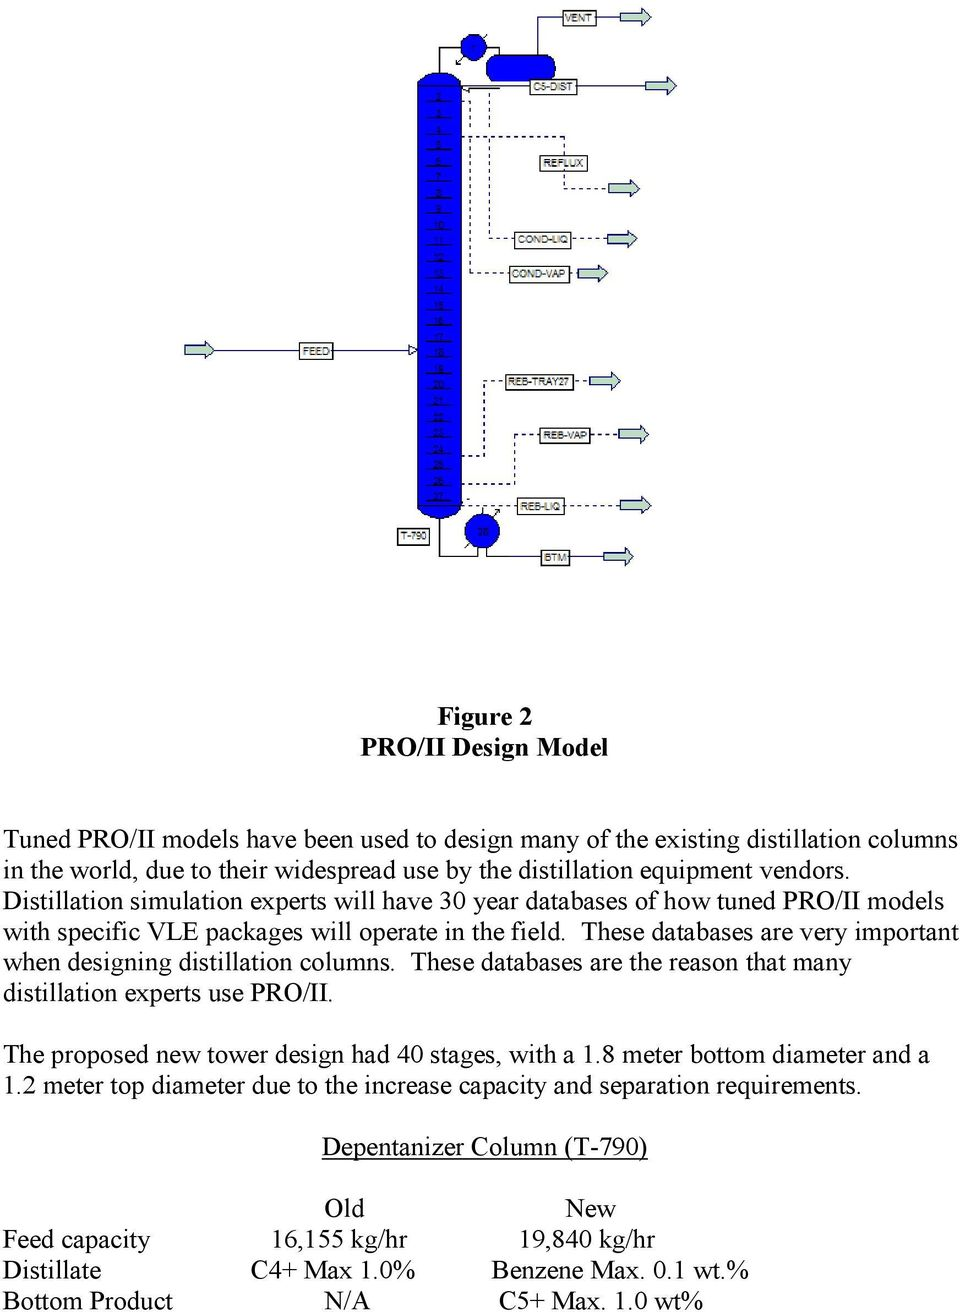 These databases are very important when designing distillation columns. These databases are the reason that many distillation experts use PRO/II. The proposed new tower design had 40 stages, with a 1.